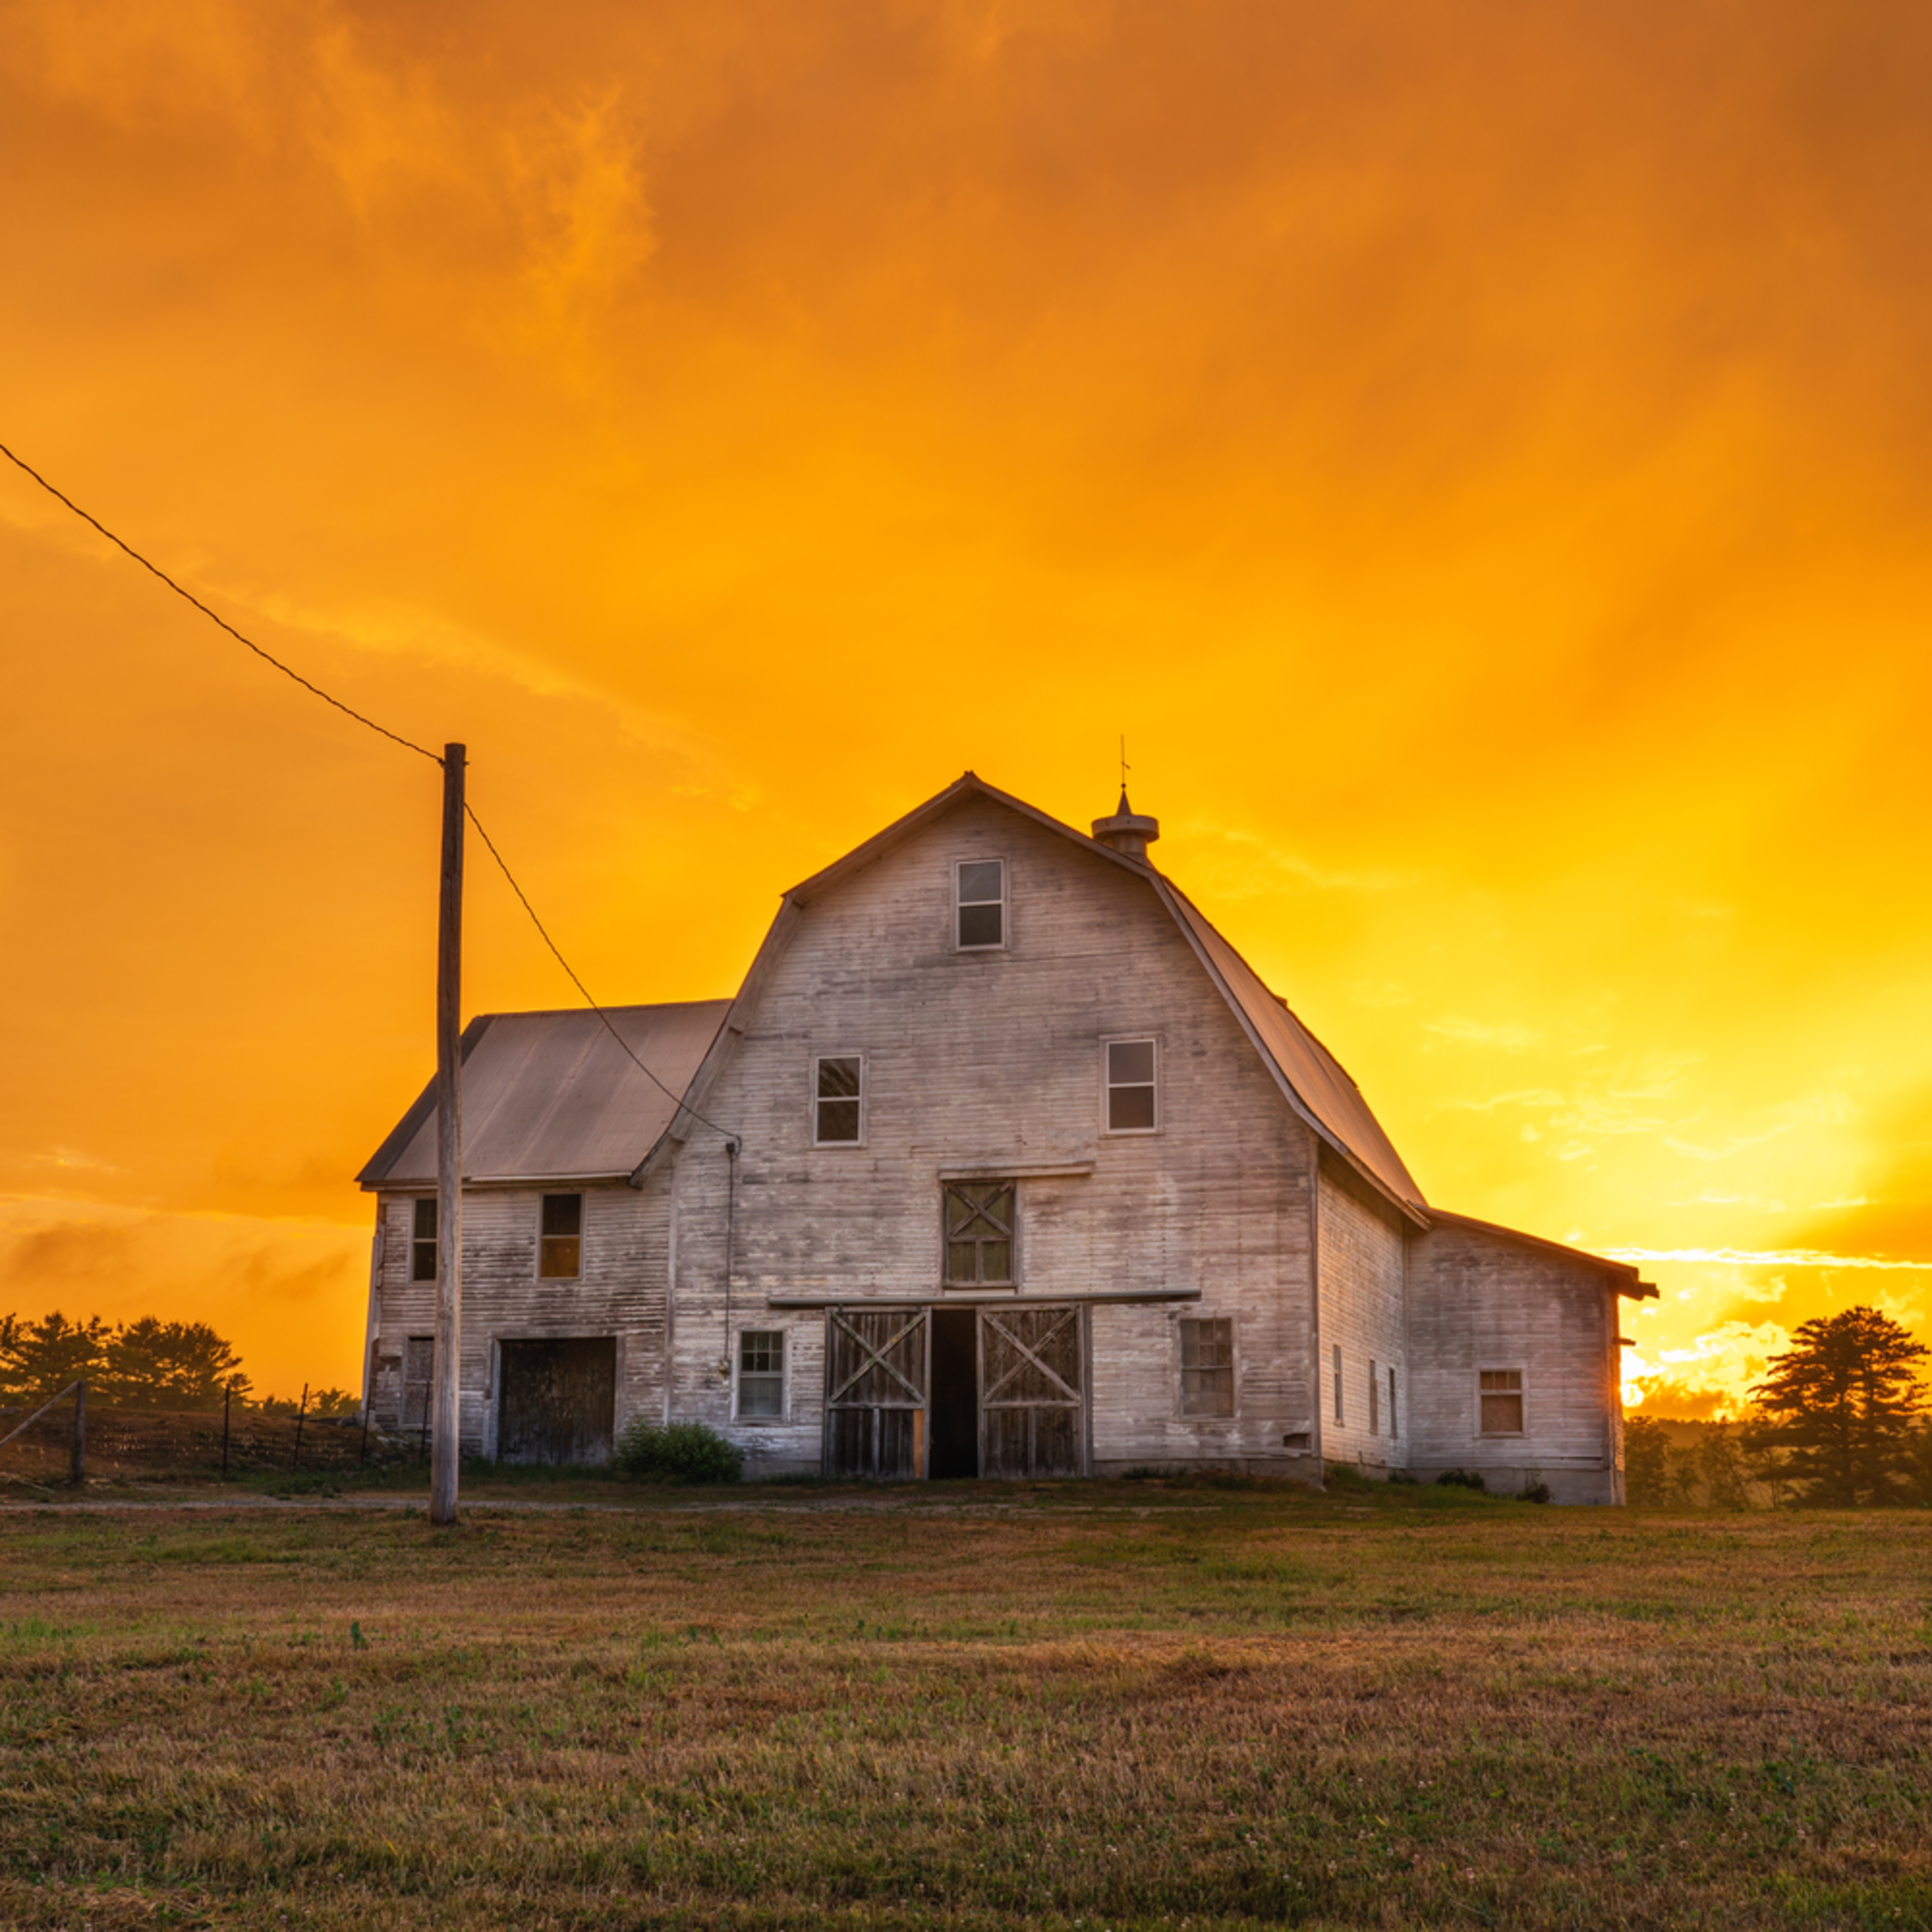 Barn sunset 2 1 r5do8h